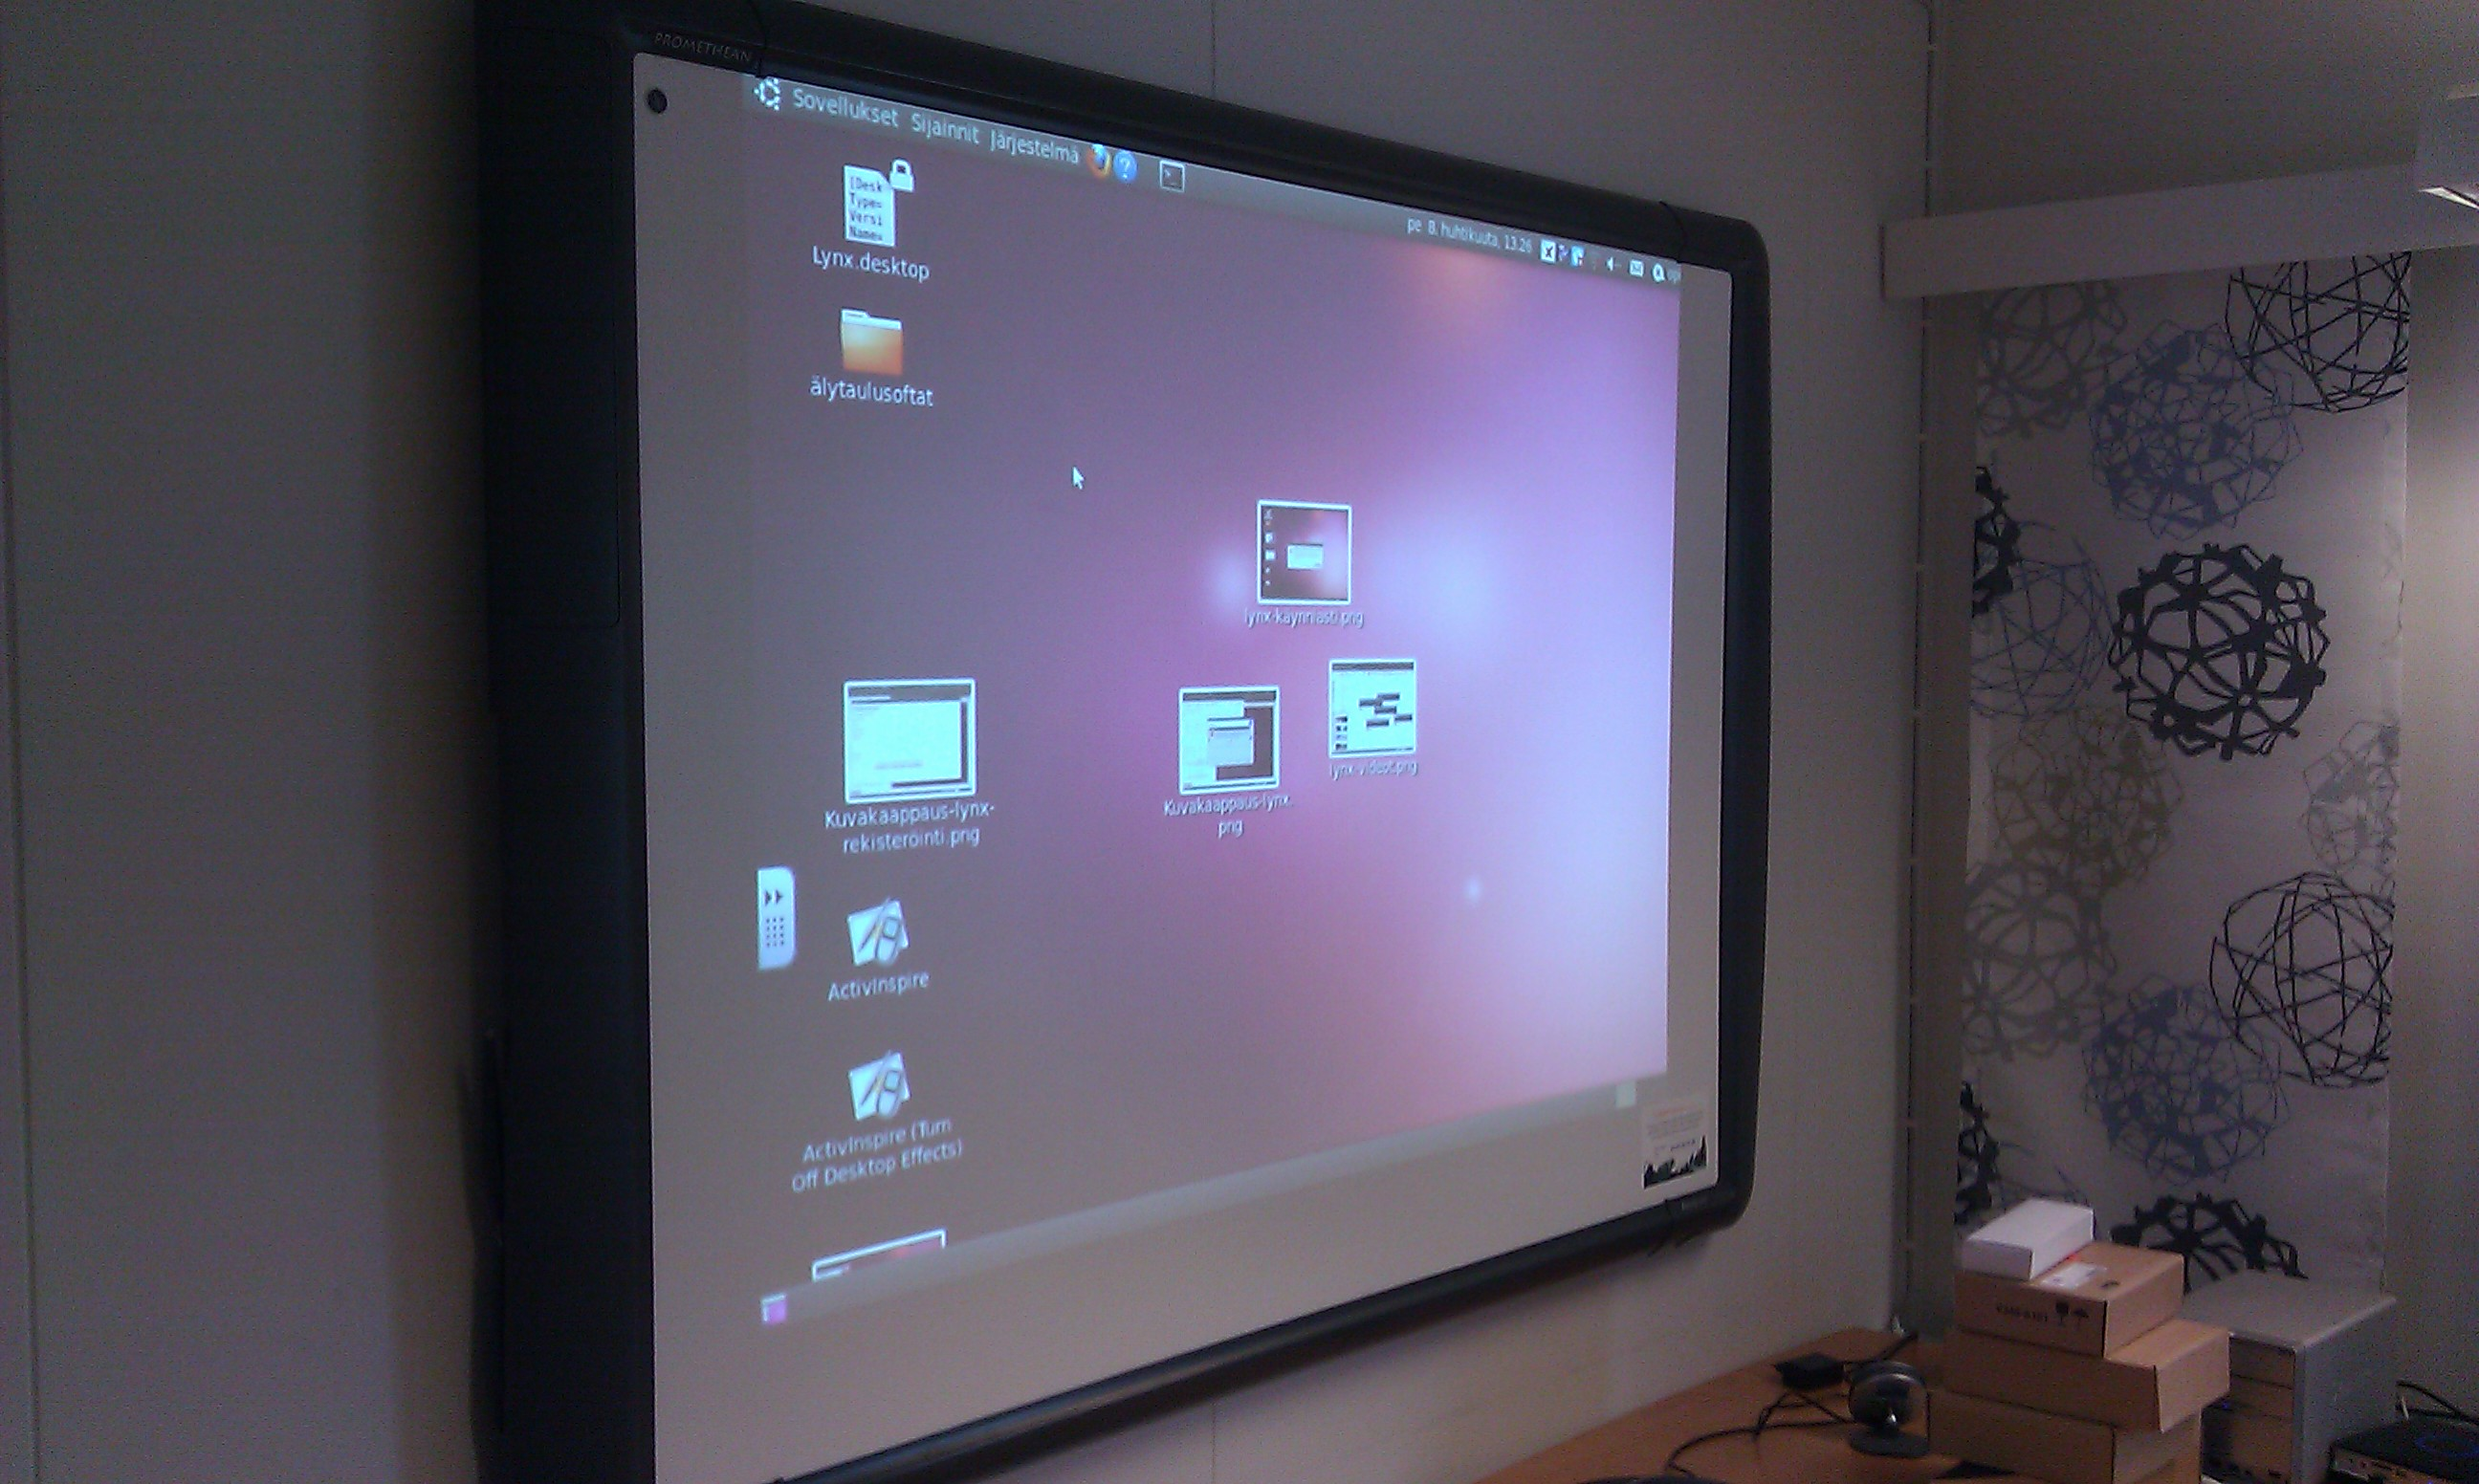 Installing Interactive Whiteboard Software on Ubuntu - Research and